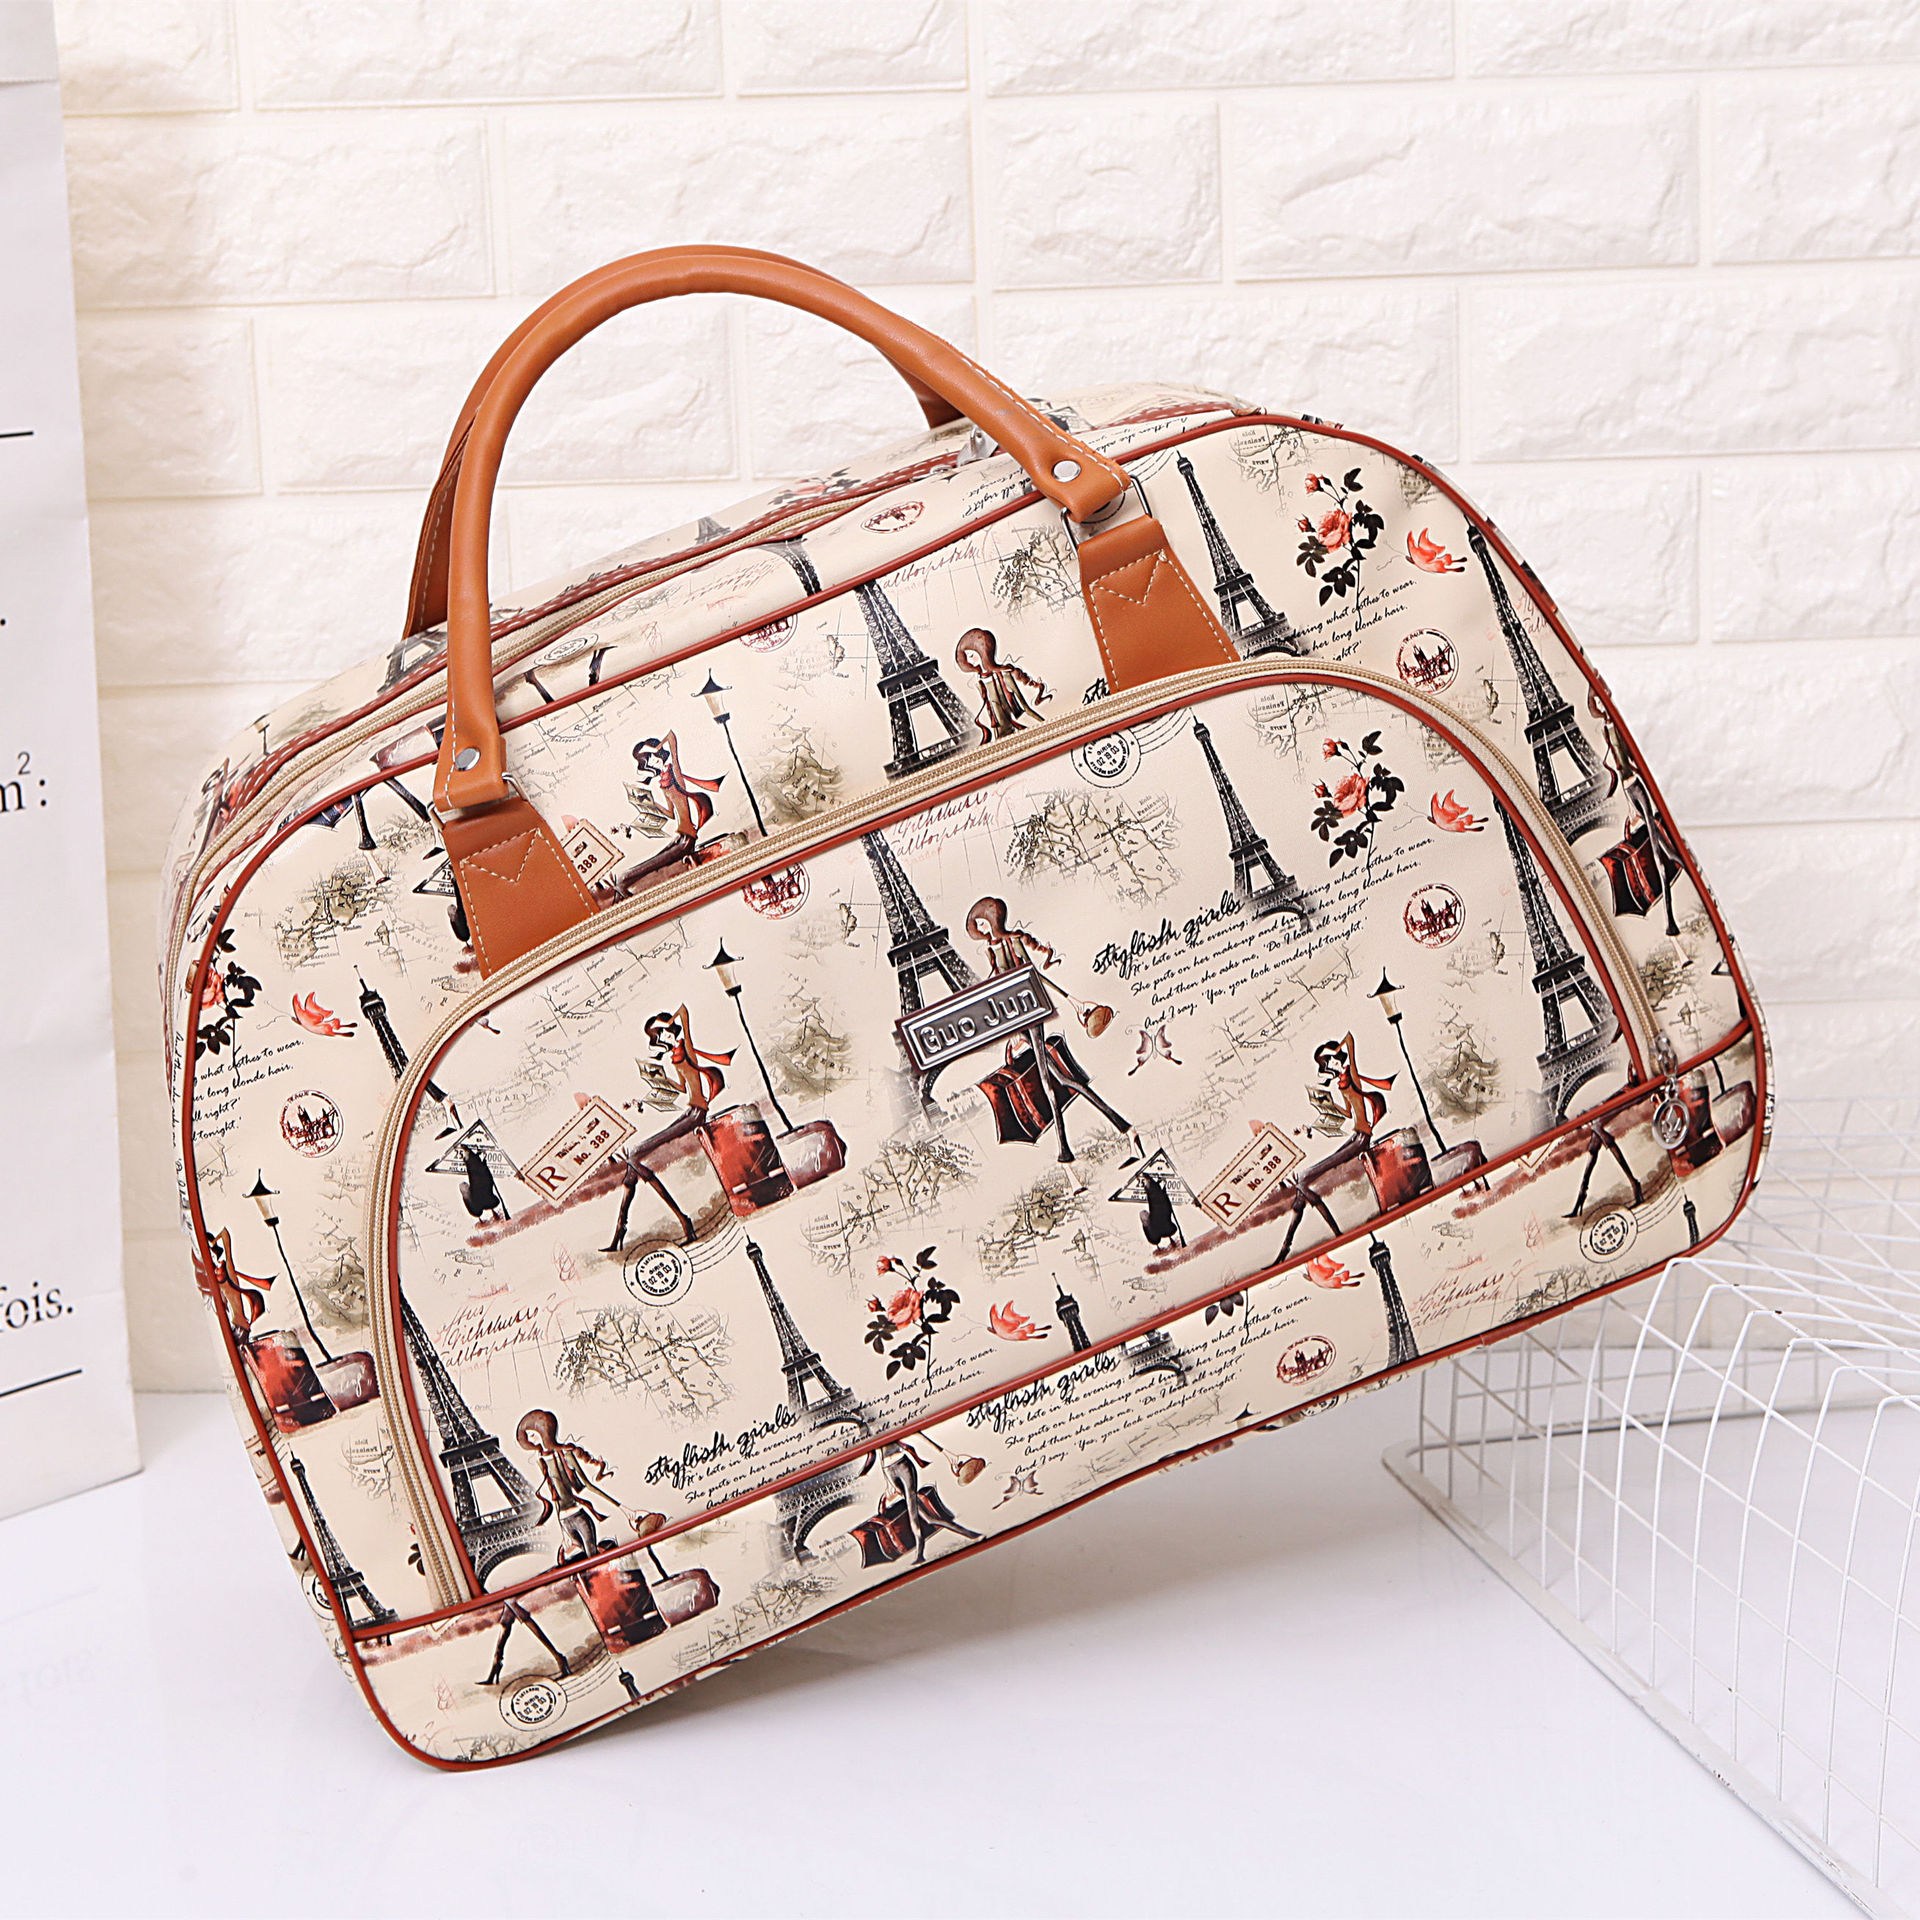 Women Travel Bags Pu Leather Large Capacity Luggage Duffle Bag Casual Travel Bags Size 54*33*21Cm